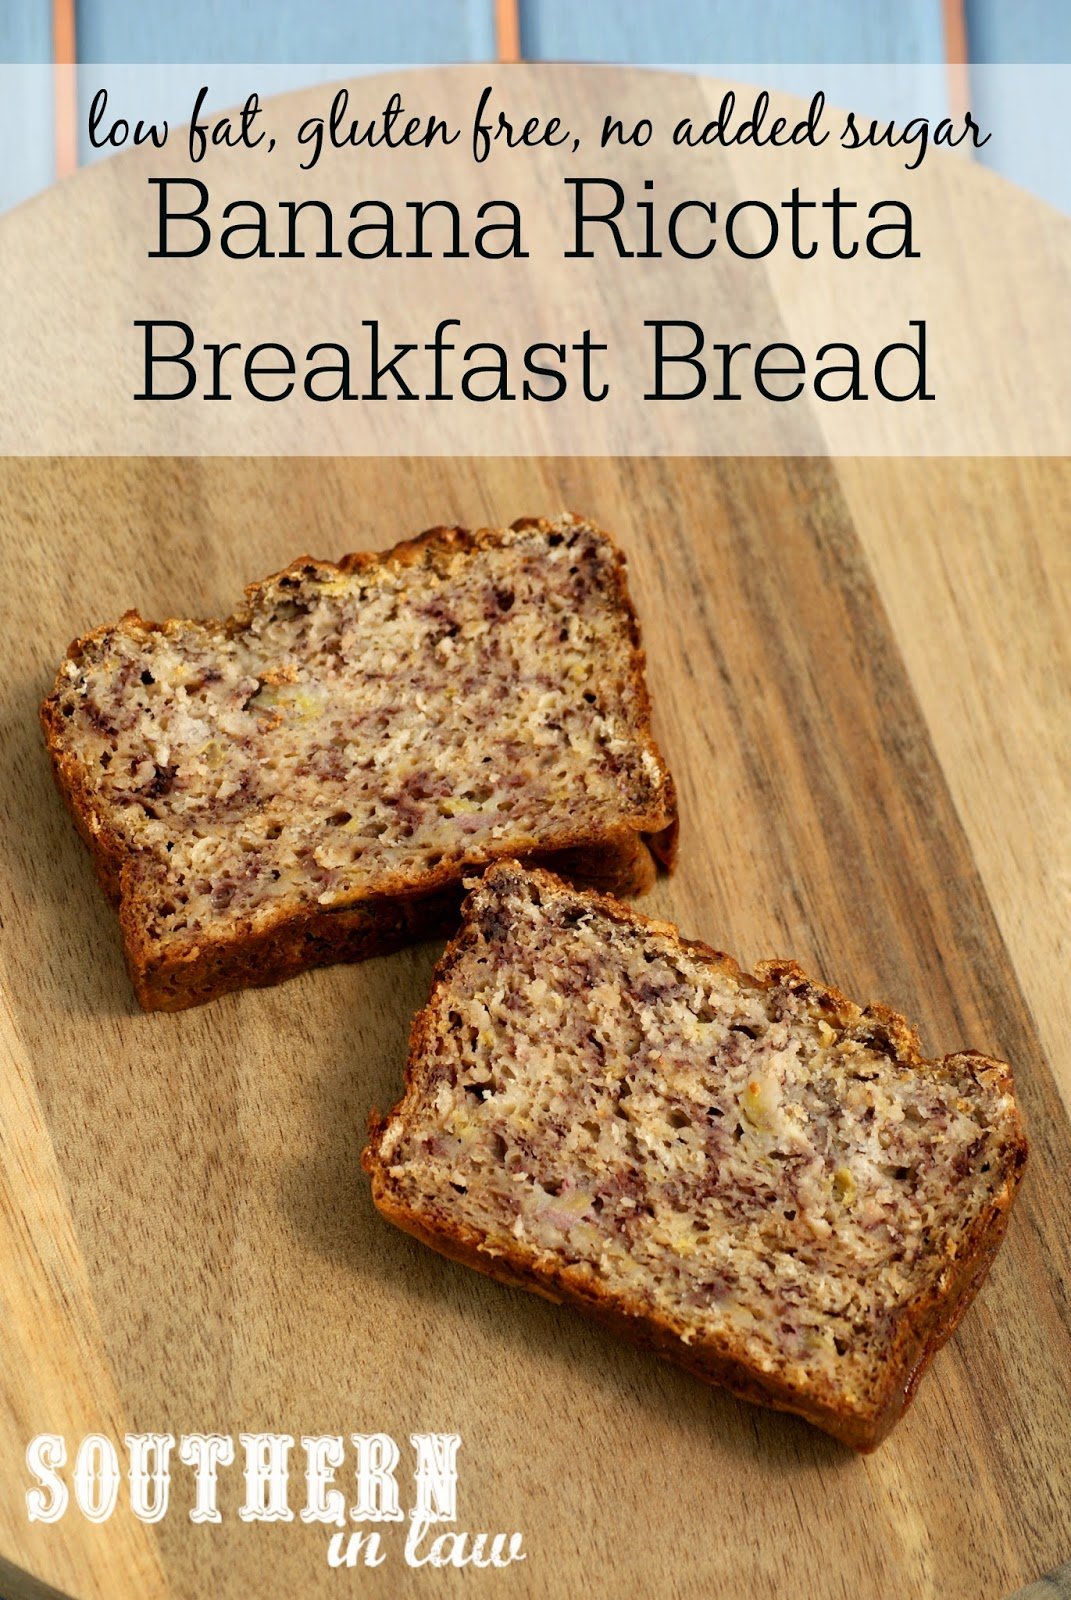 Healthy Ricotta Banana Bread Recipe - low fat, gluten free, sugar free, egg free, healthy